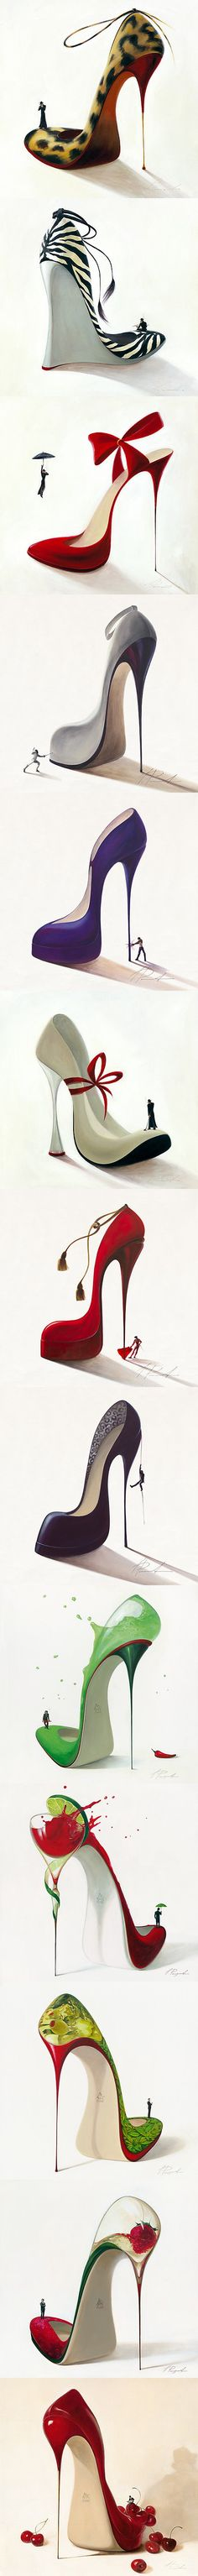 All the beautiful shoe illustrations by Inna Panasenko. I have four in my room! :) Love them!